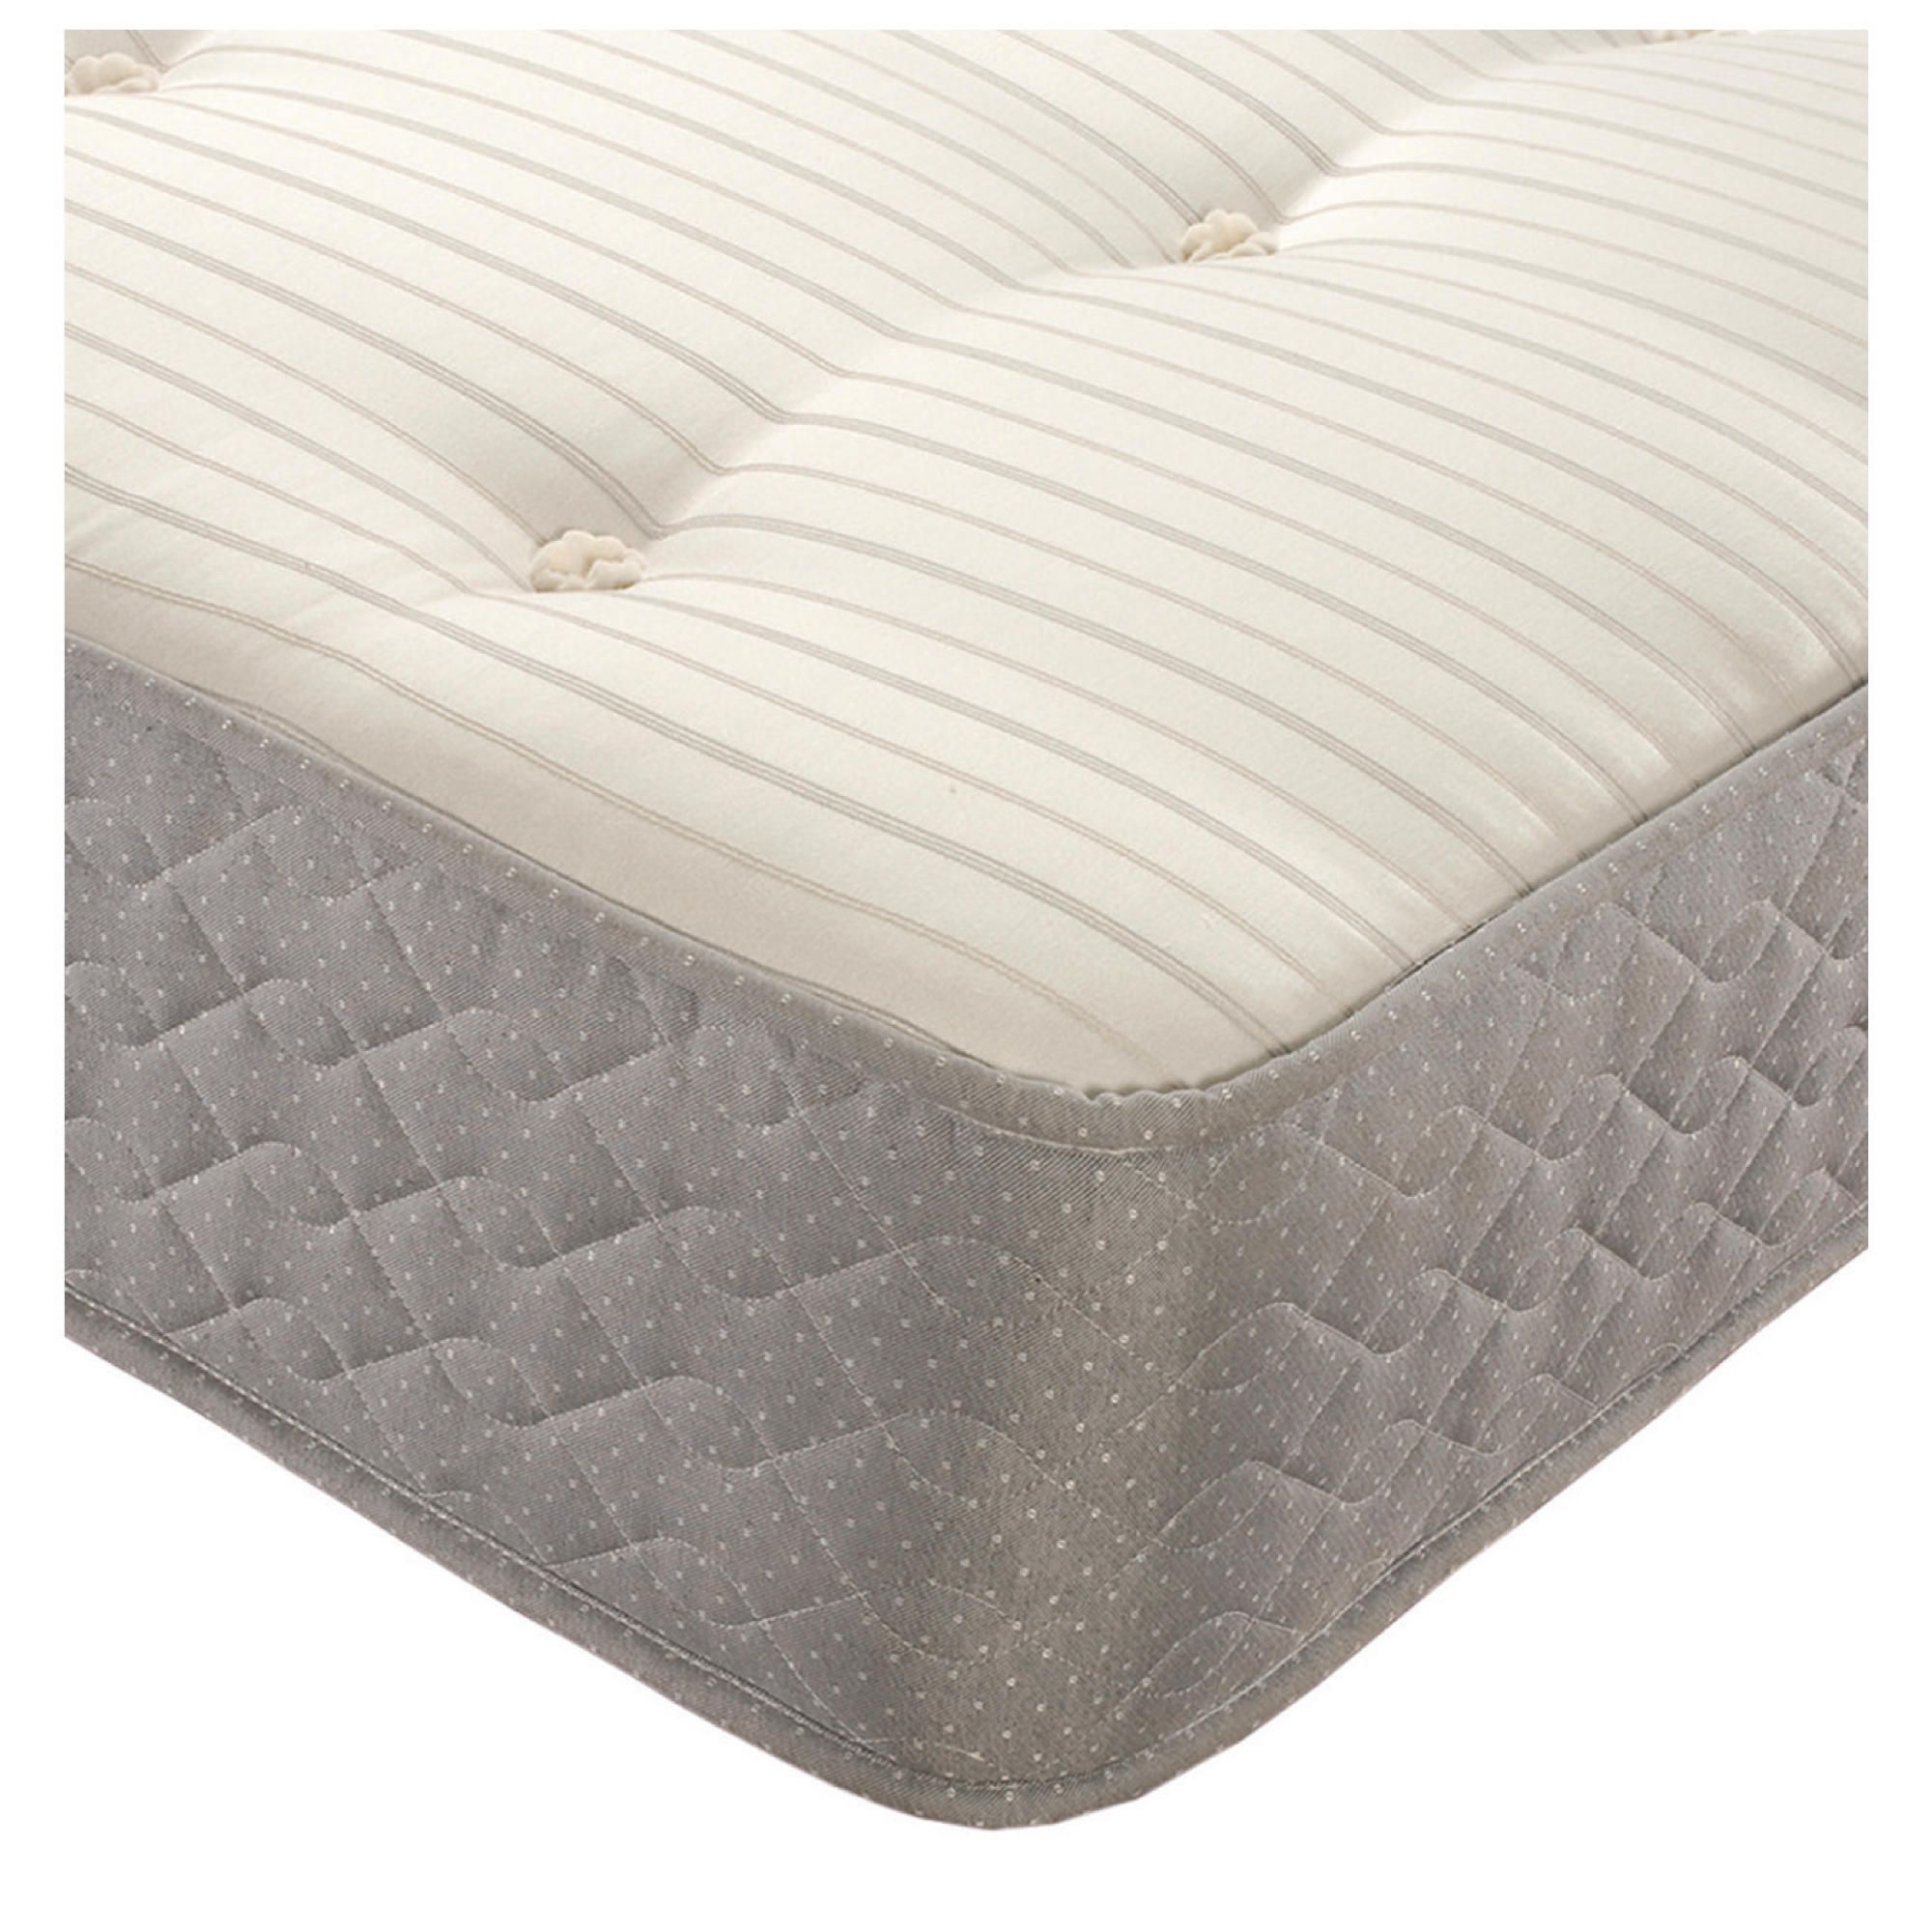 Sealy Posturepedic Ortho Backcare Plus Single Mattress at Tesco Direct